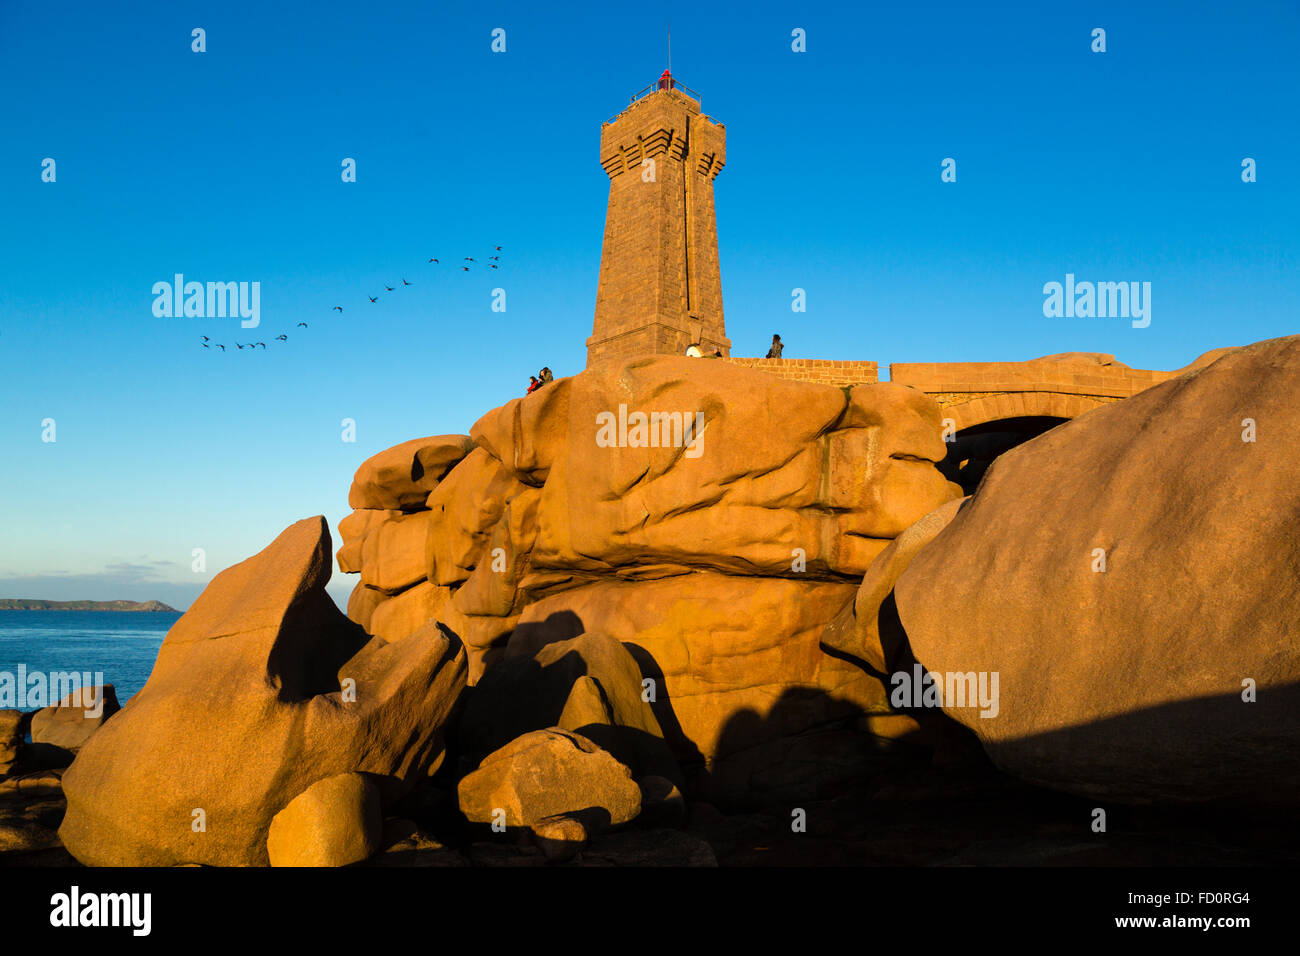 France,Brittany,Cotes d'Armor, the Men Ruz  lighthouse  at Ploumanach, commune of Perros Guirec Stock Photo